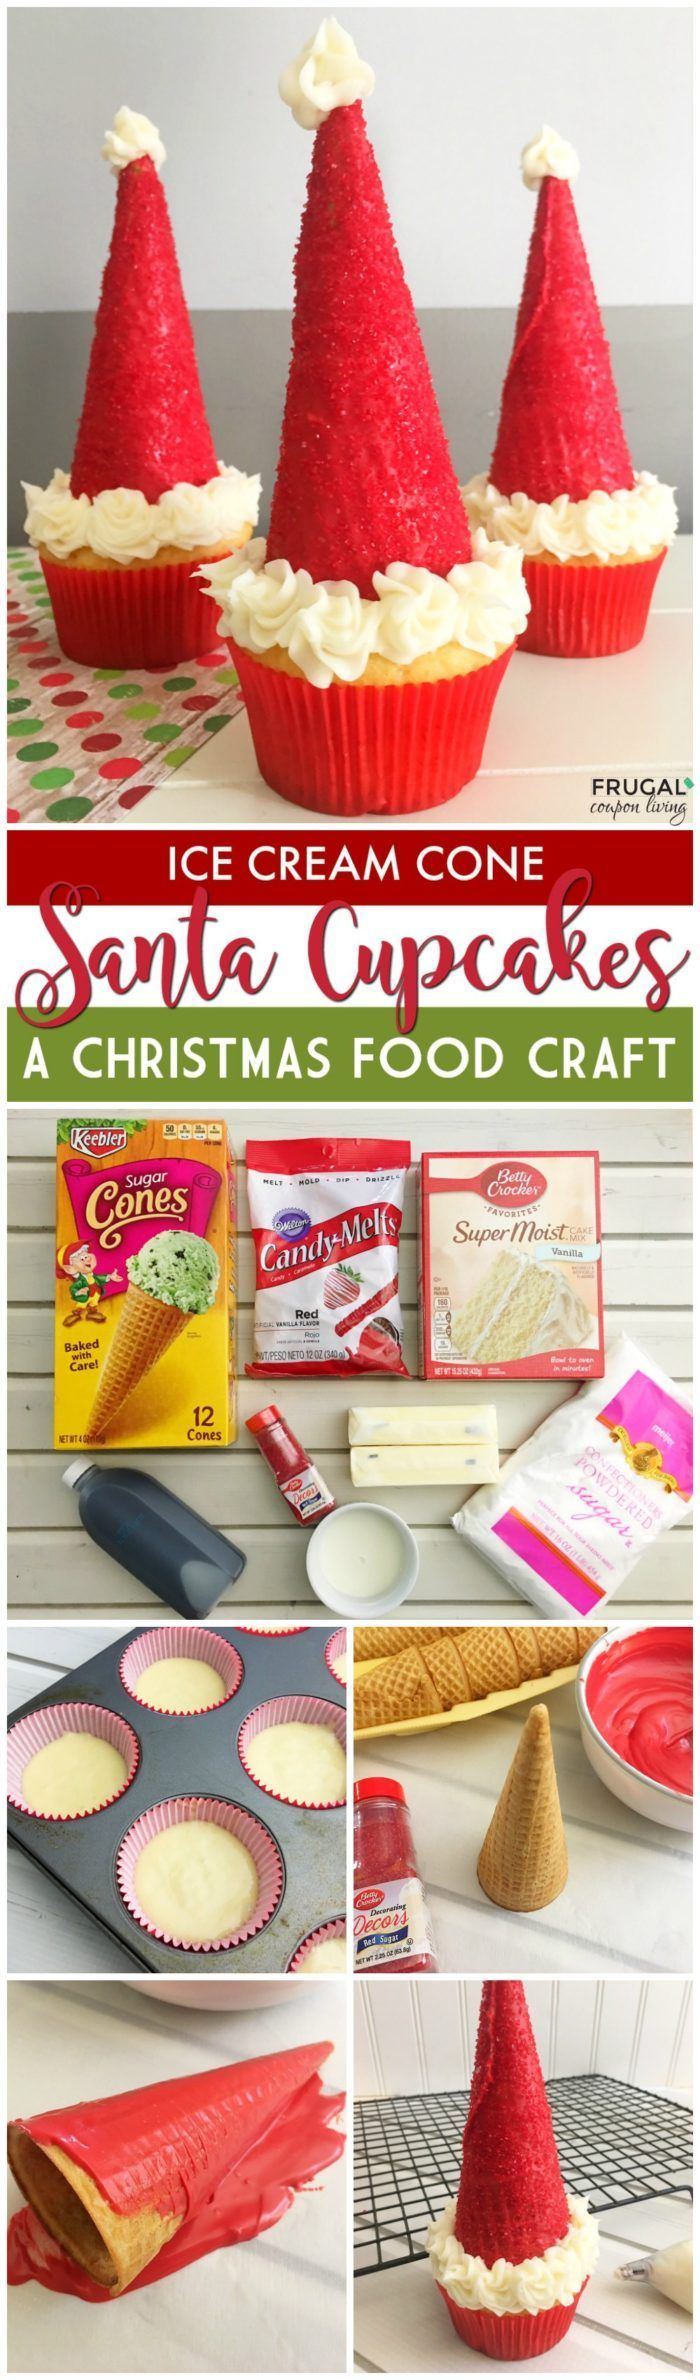 Ice Cream Cone Santa Hat Cupcakes on Frugal Coupon Living  This is a fun Kids Food Craft for the Christmas holidays. Maybe a treat you leave for Santa instead of cookies! #santa #kidsfoodcrafts #christmas #cupcake #kidsfoodcrafts #christmascupcakes #cupcakes #cupcakerecipe #santaclaus